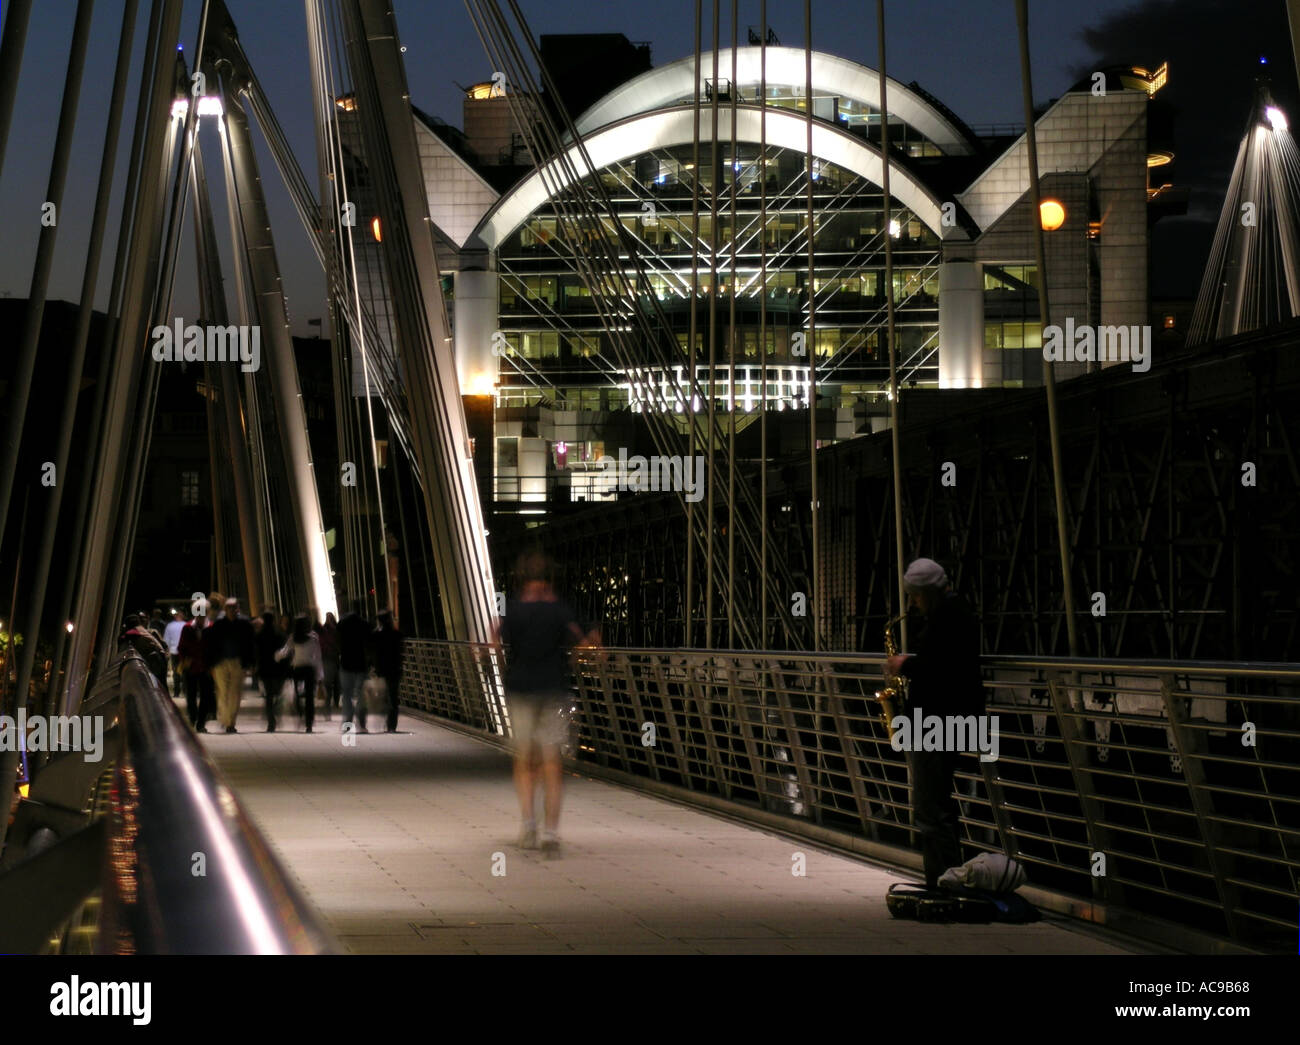 Musician on the new Hungerford Bridge also known as Jubilee Bridge in London England UK - Stock Image